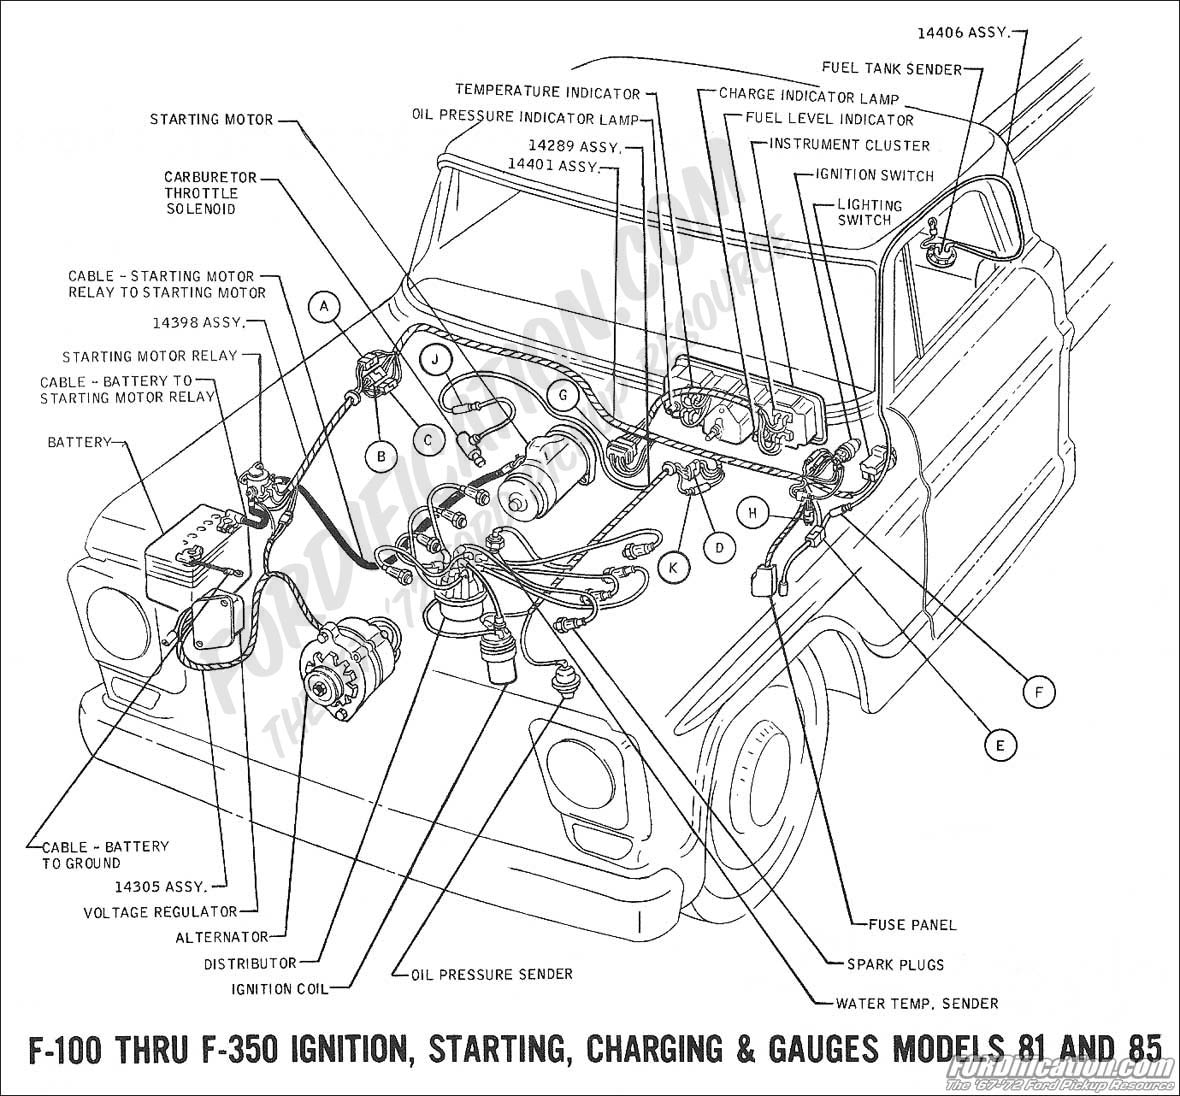 1968 roadrunner wiring diagram also fuel gauge ws 1517  mustang fuse box diagram on 1969 chevy ignition switch  mustang fuse box diagram on 1969 chevy